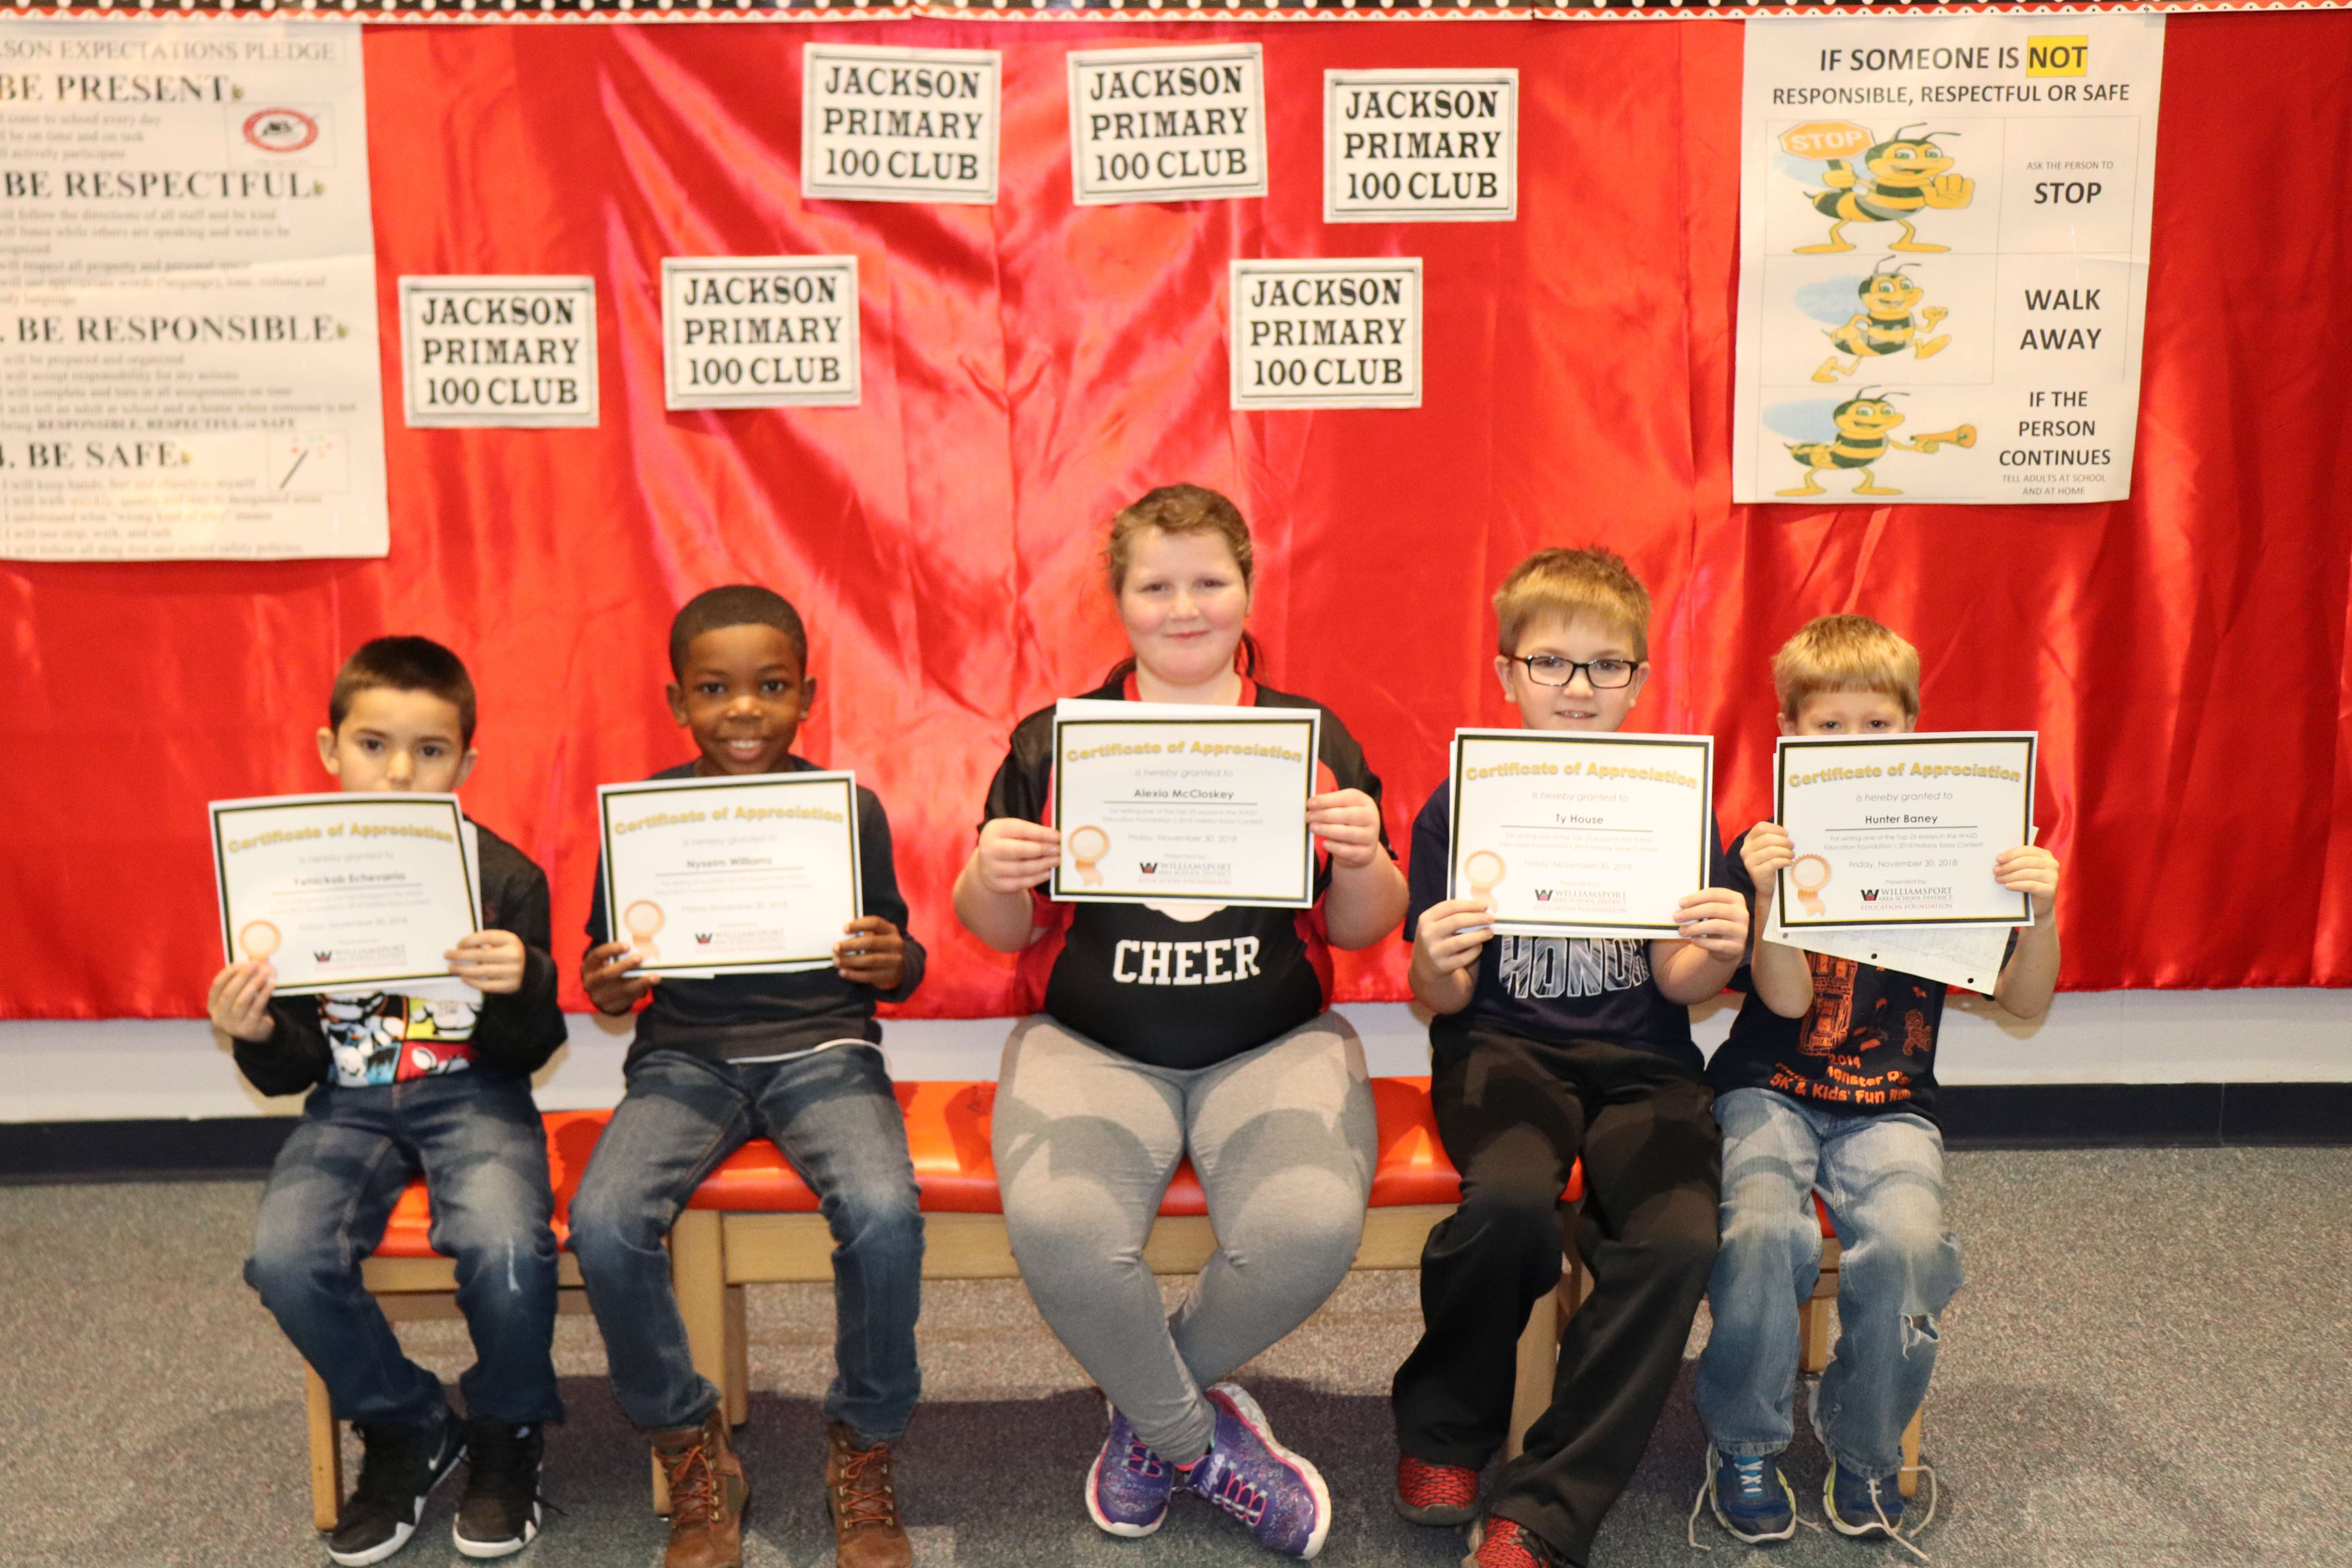 25 Winners Selected in 2018 WASDEF Holiday Essay Contest